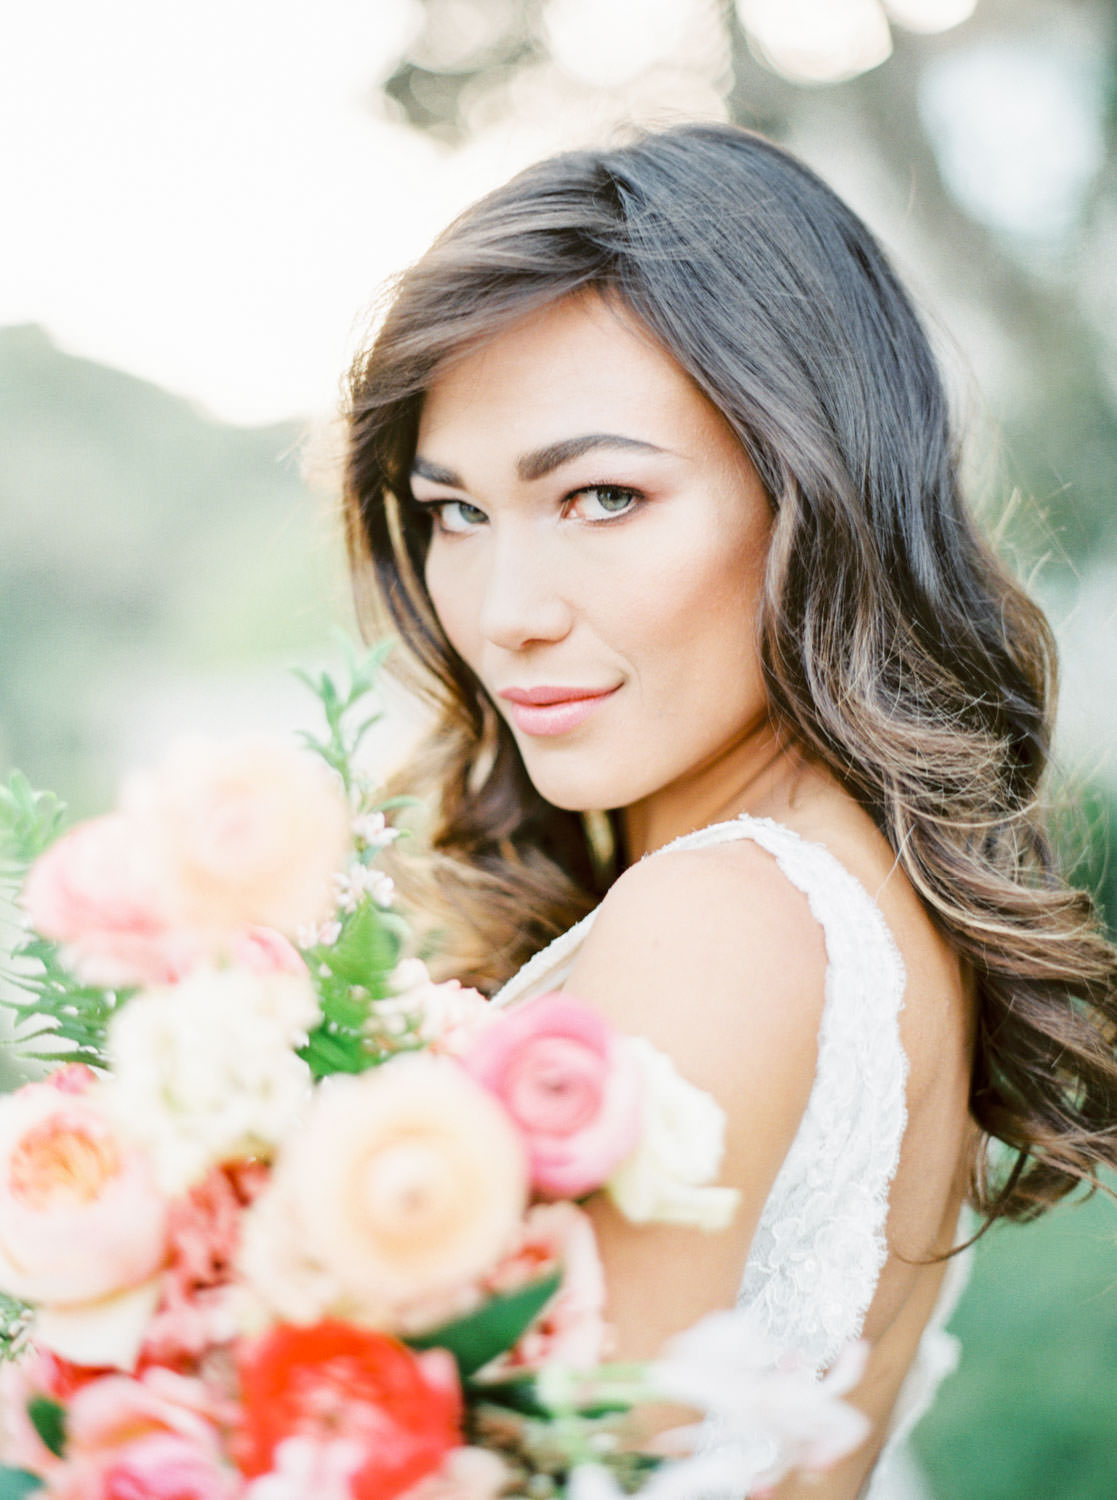 Natural wedding makeup and hair down, San Diego bridal portraits at a private estate, Bride in Marchesa Daffodil gown, Bridal bouquet with apricot peach blush pink and green, Film by Cavin Elizabeth Photography